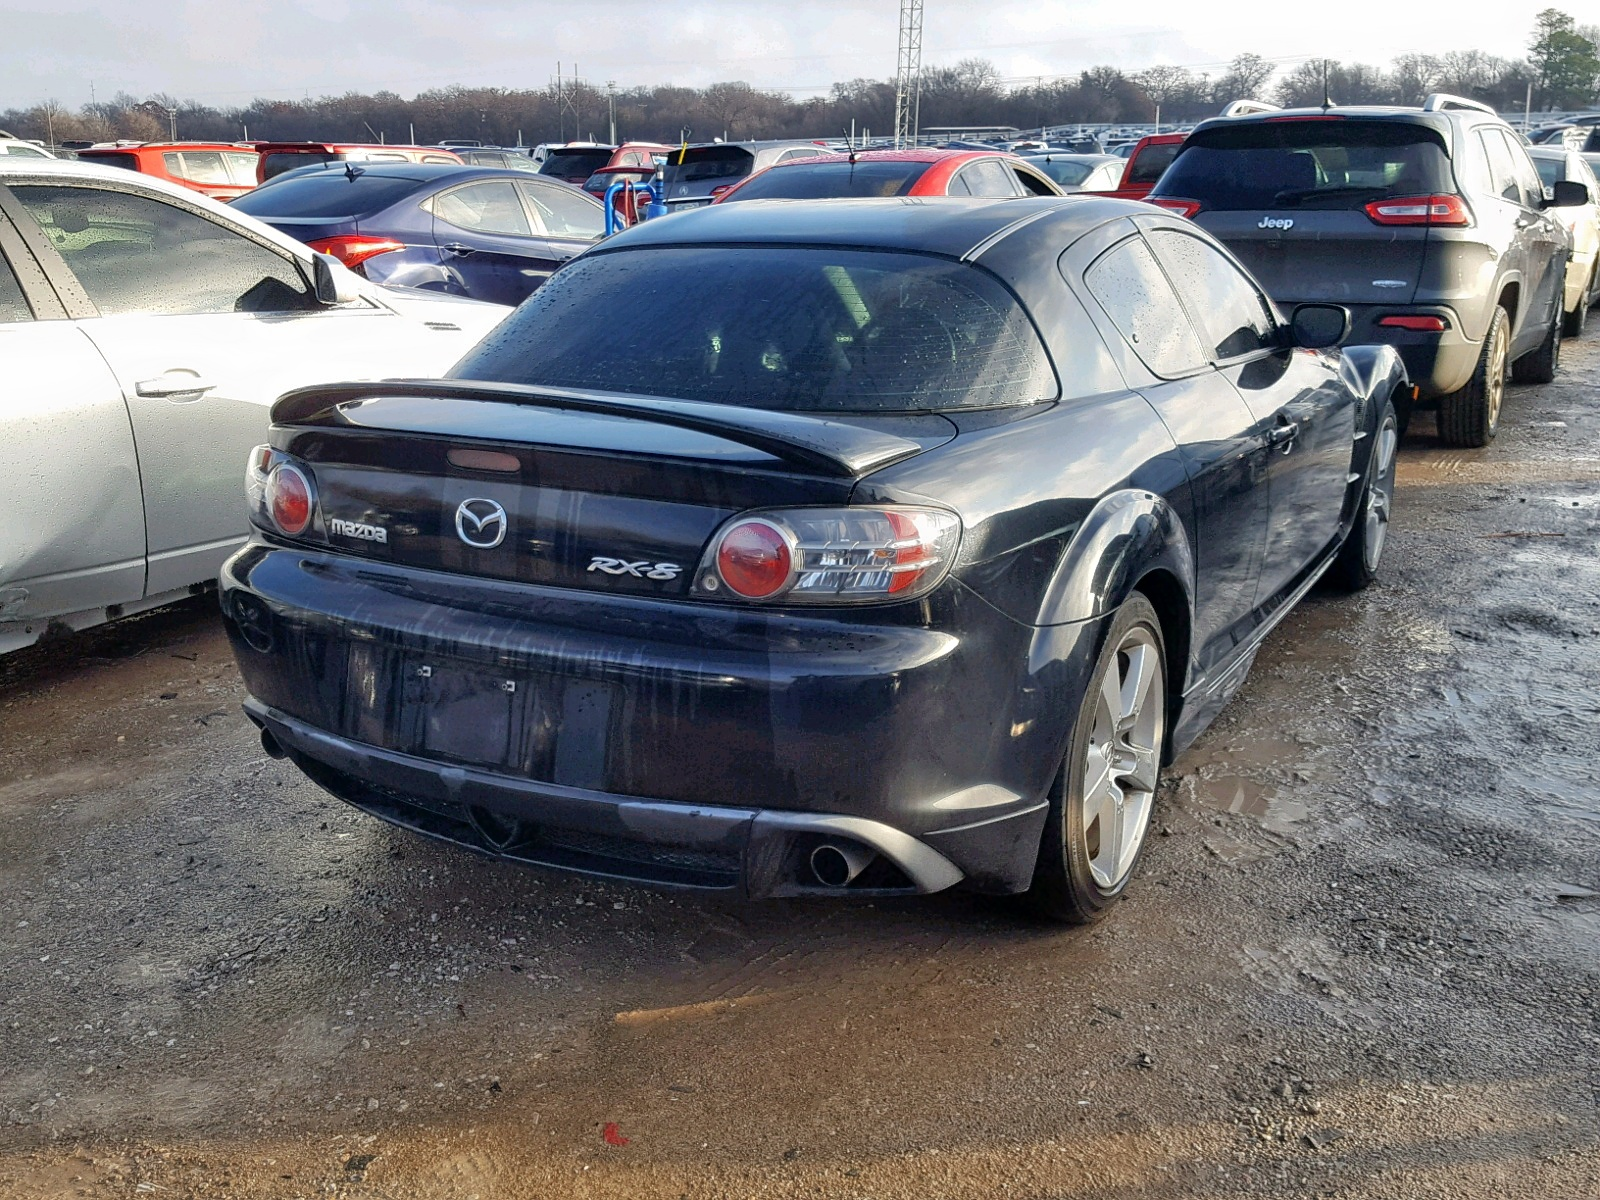 2007 mazda rx8 for sale at copart oklahoma city, ok lot# 56699558